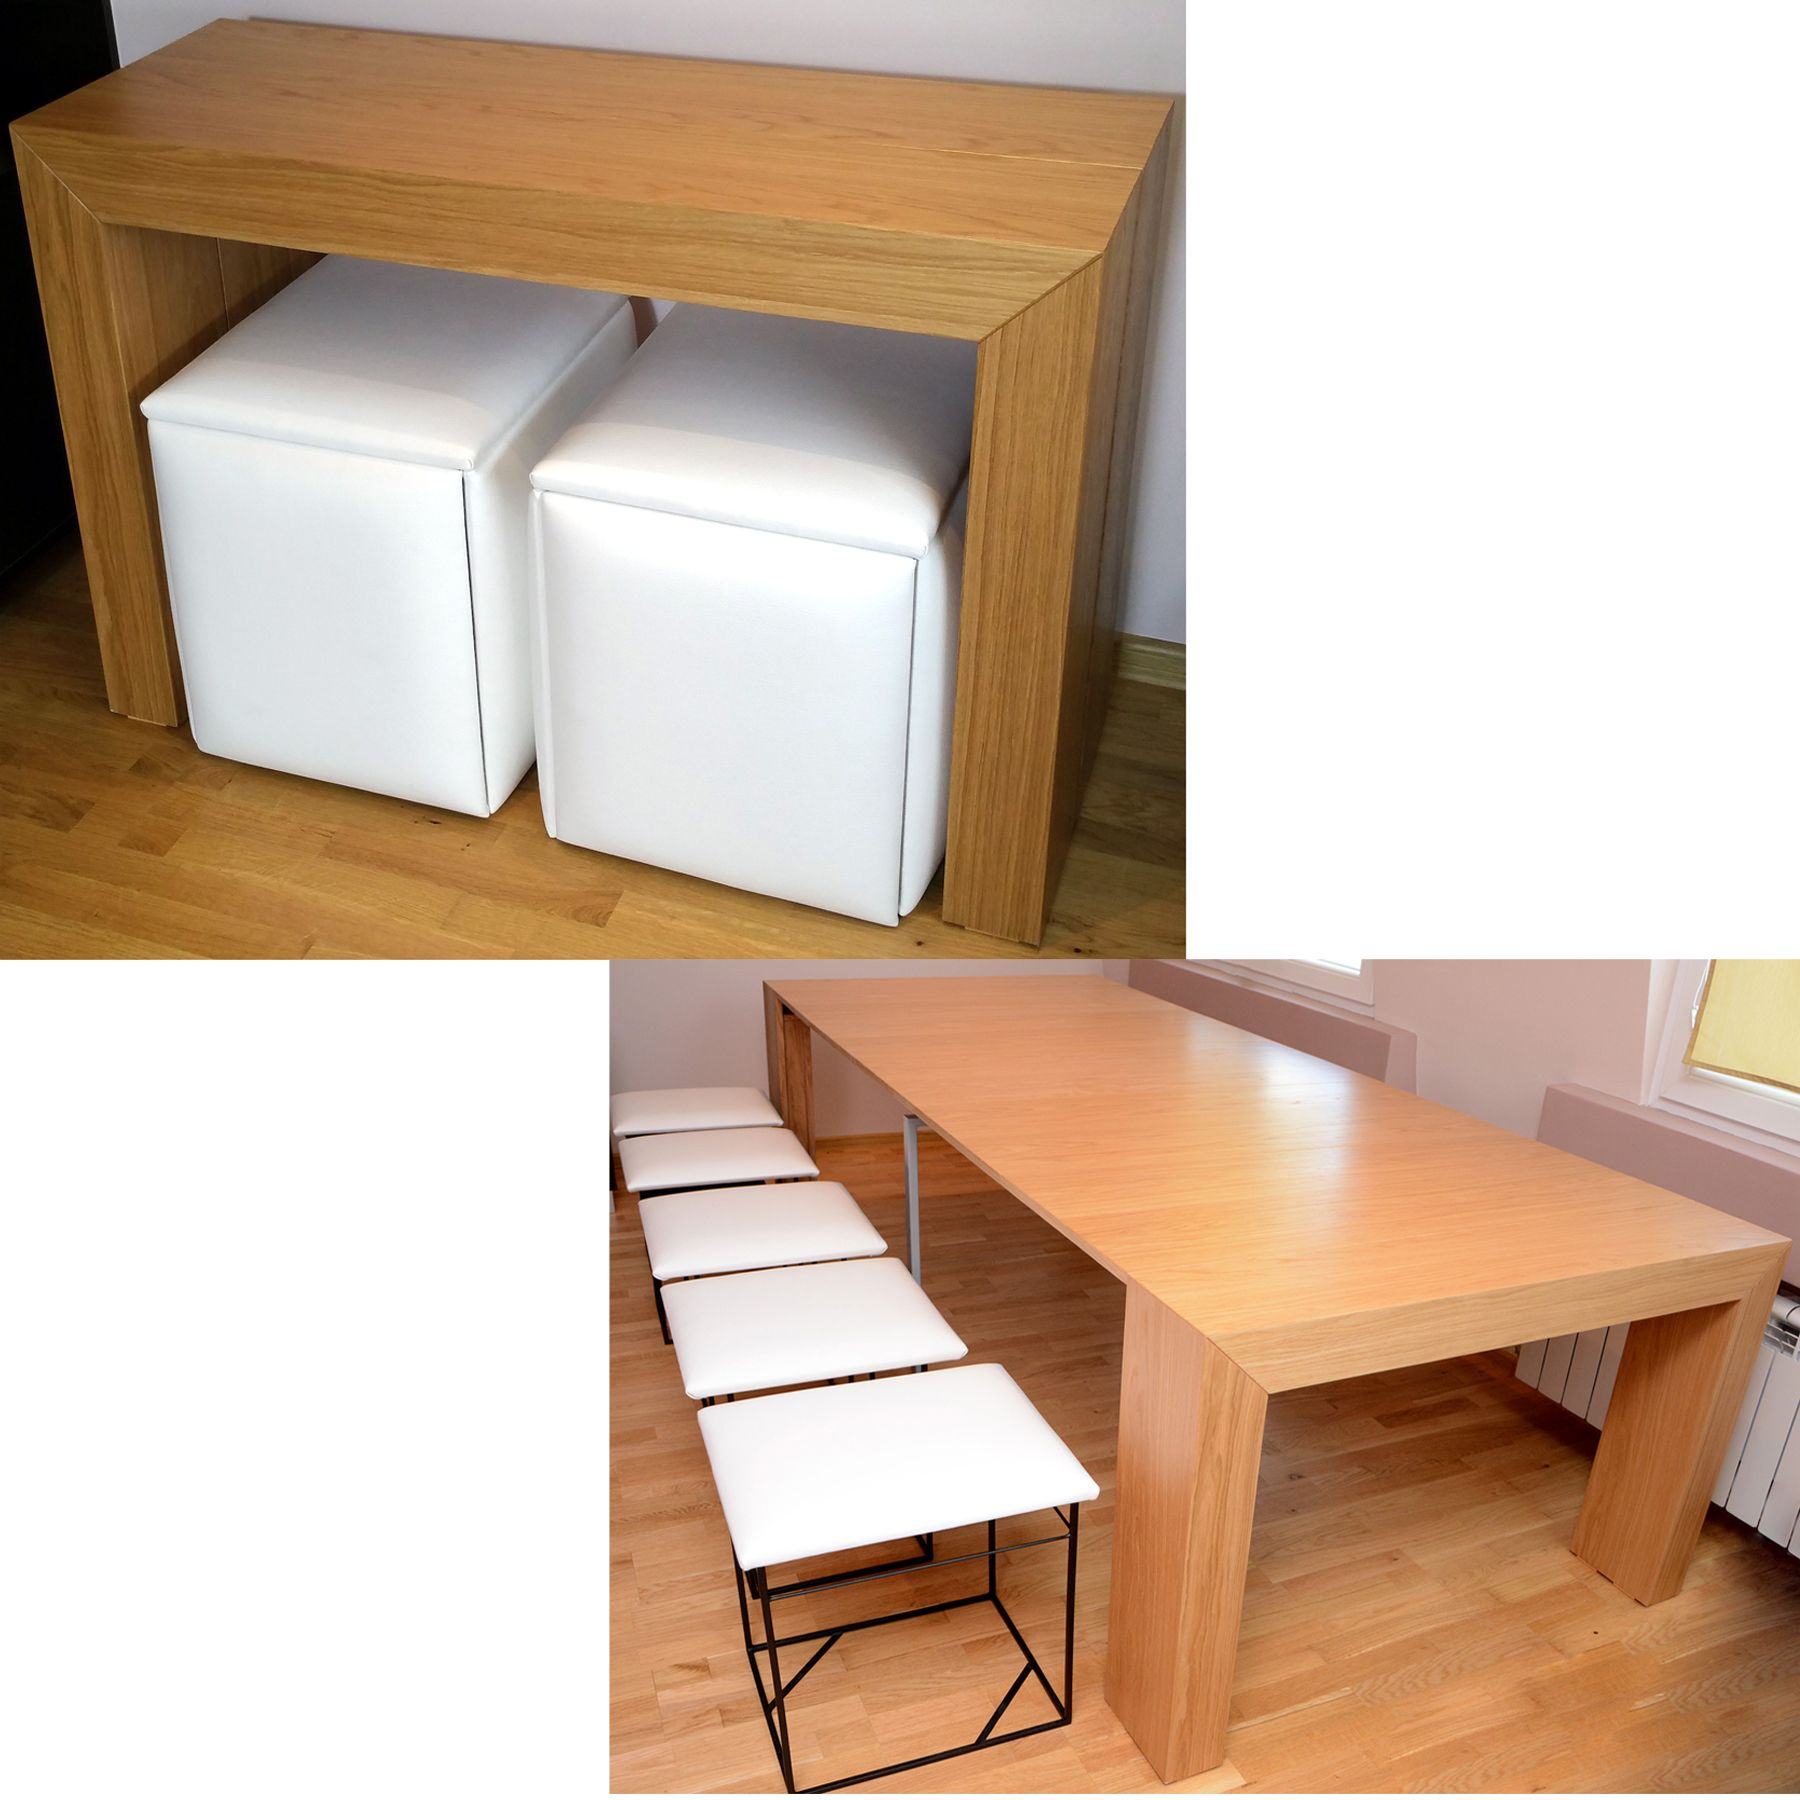 Space Saving Table And Chairs Space Saving Table And Chairs Set For 10 Attic To Buy In